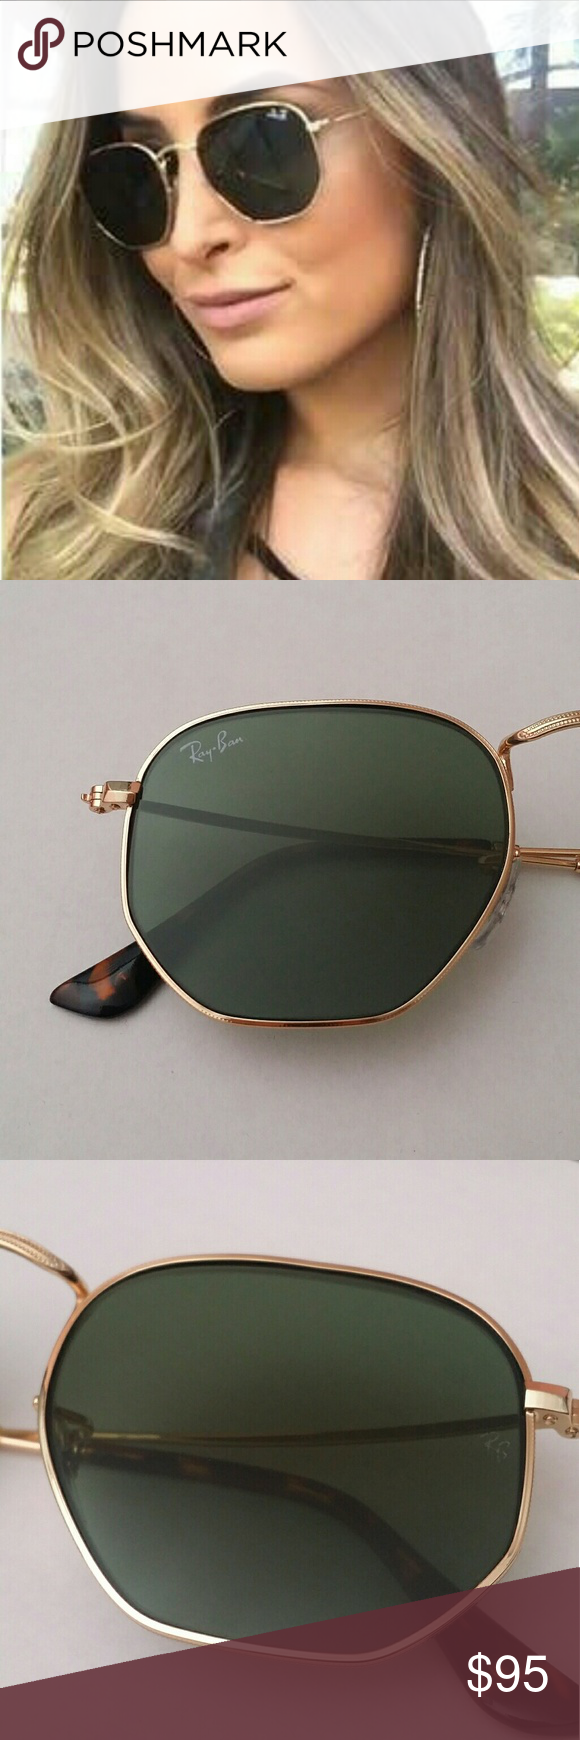 48e6639f2ed9 Only sell 100% Brand New & Authentic Ray-Ban Sunglasses. PRODUCT DETAILS:  Model: RB 3548 001 Style: Hexagonal Frame color: Gold Lens ...